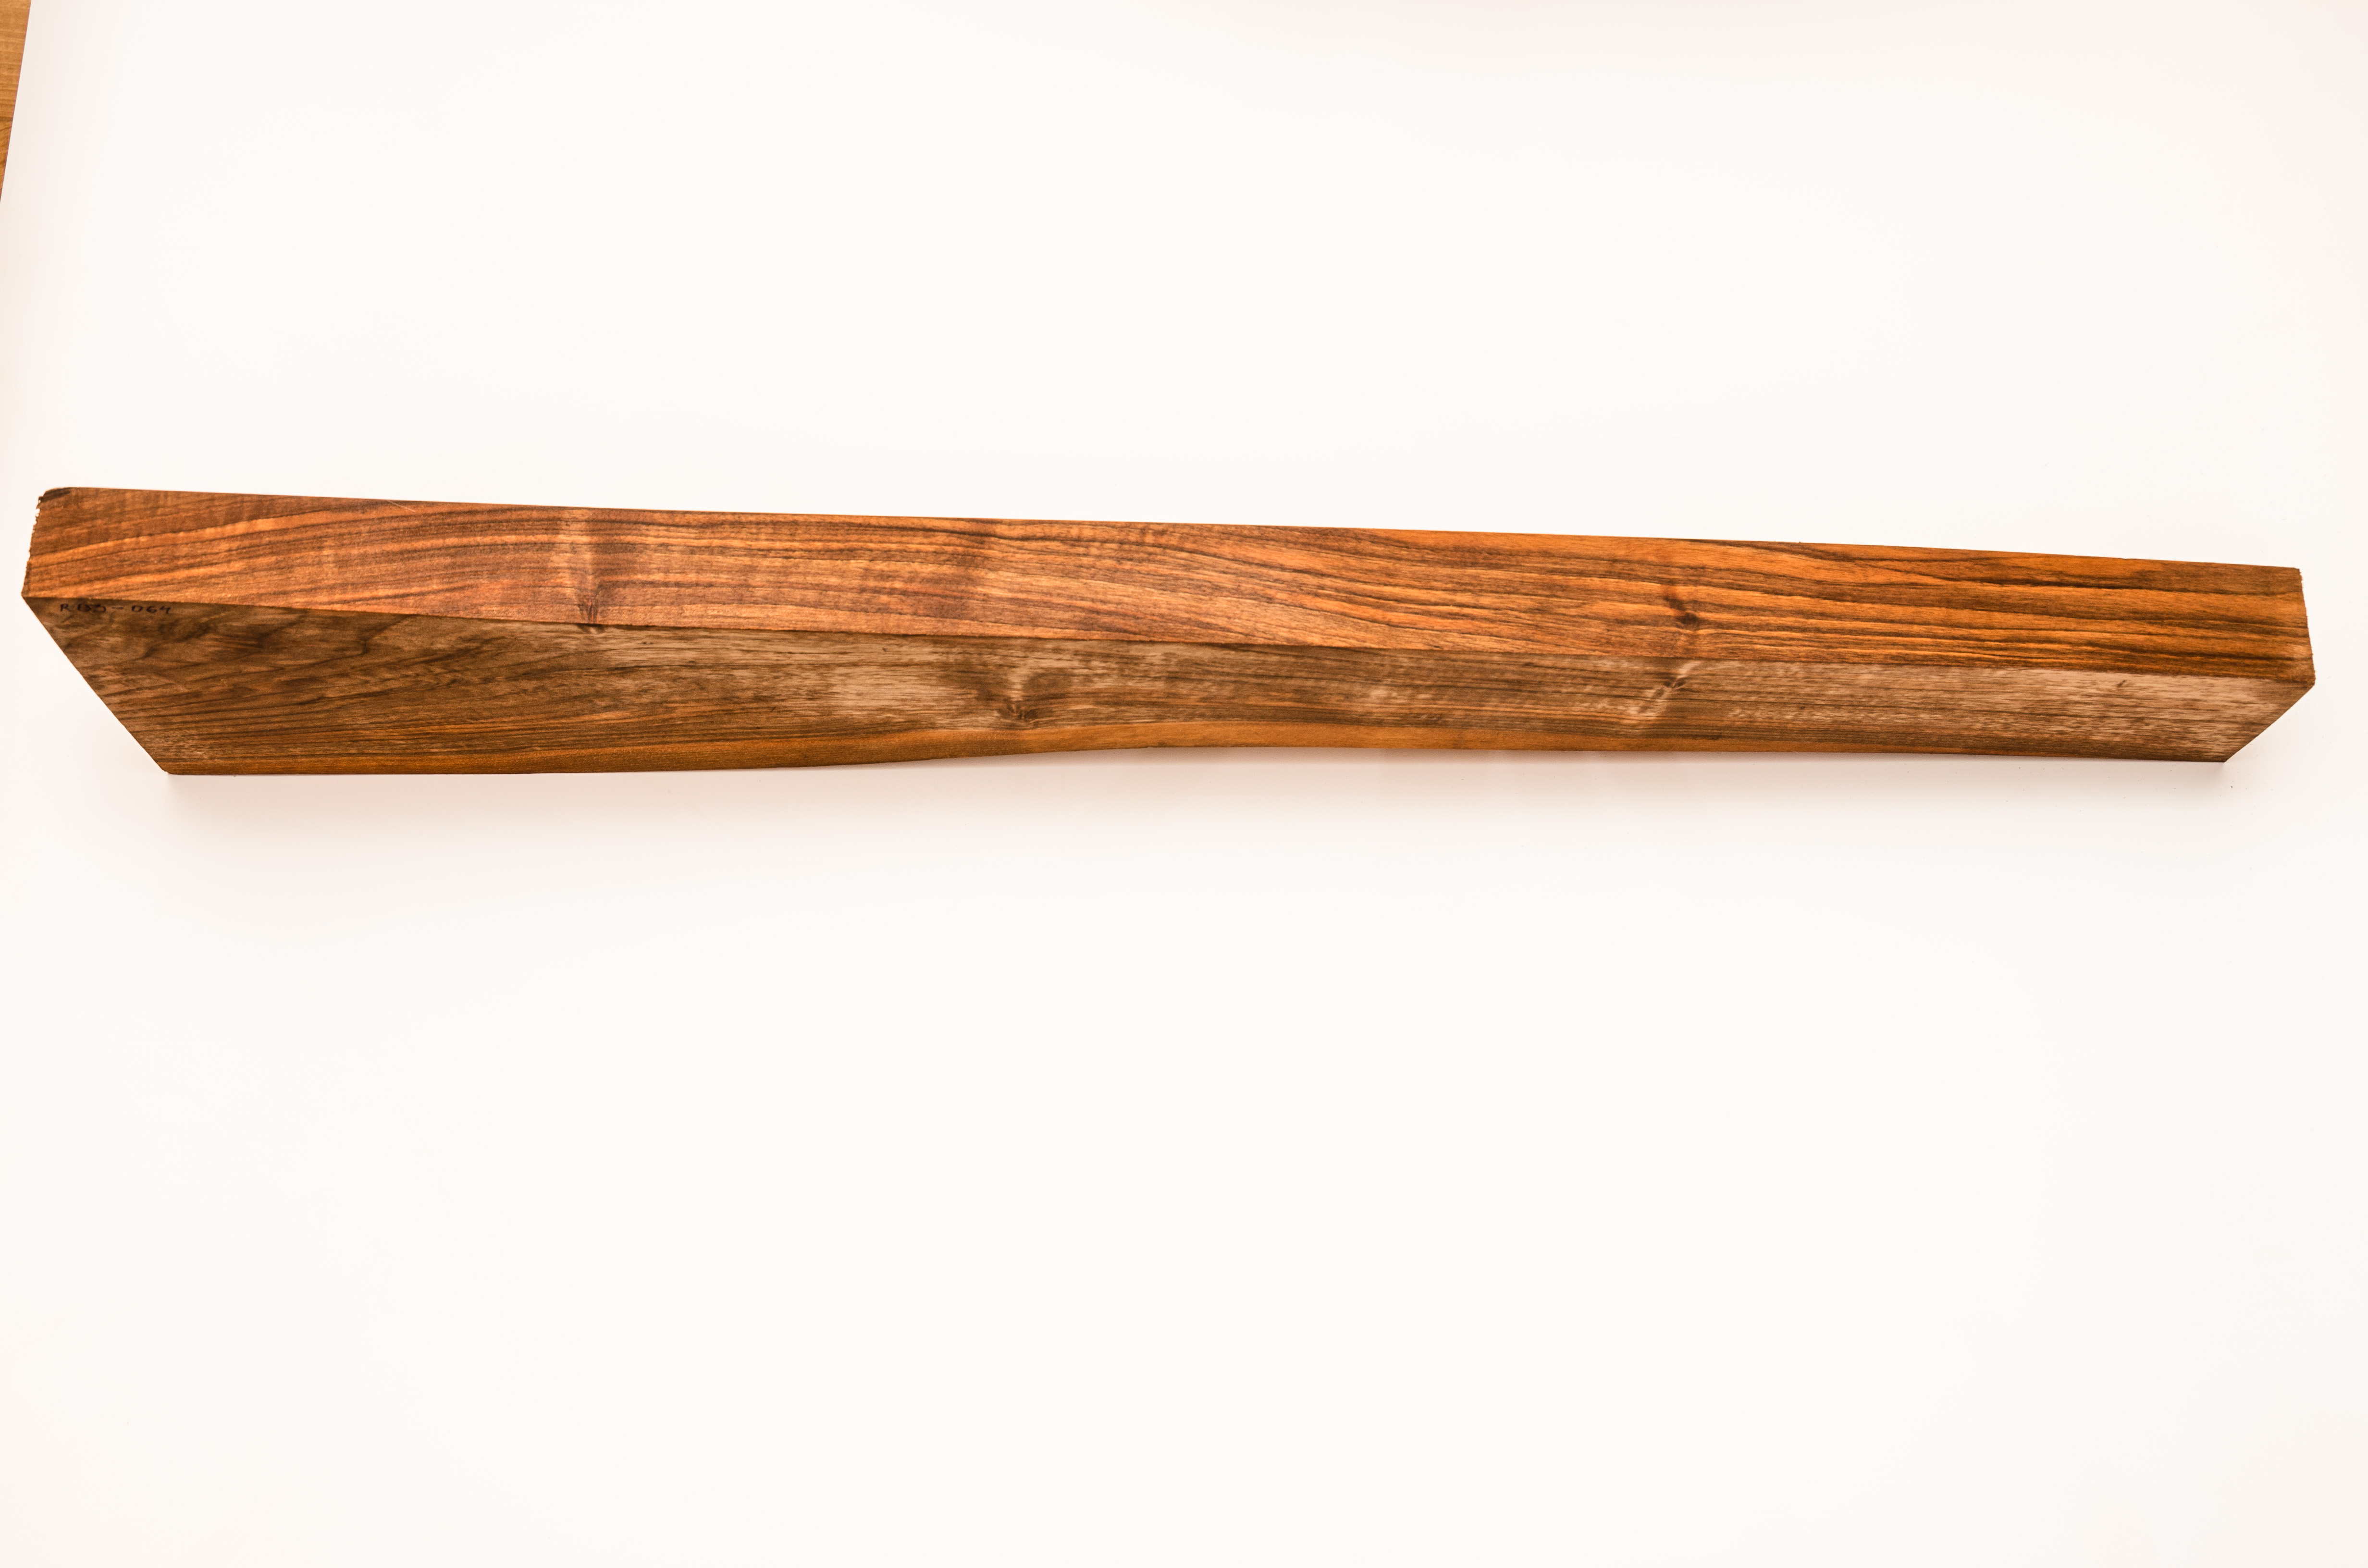 walnut_stock_blanks_for_guns_and_rifles-1616